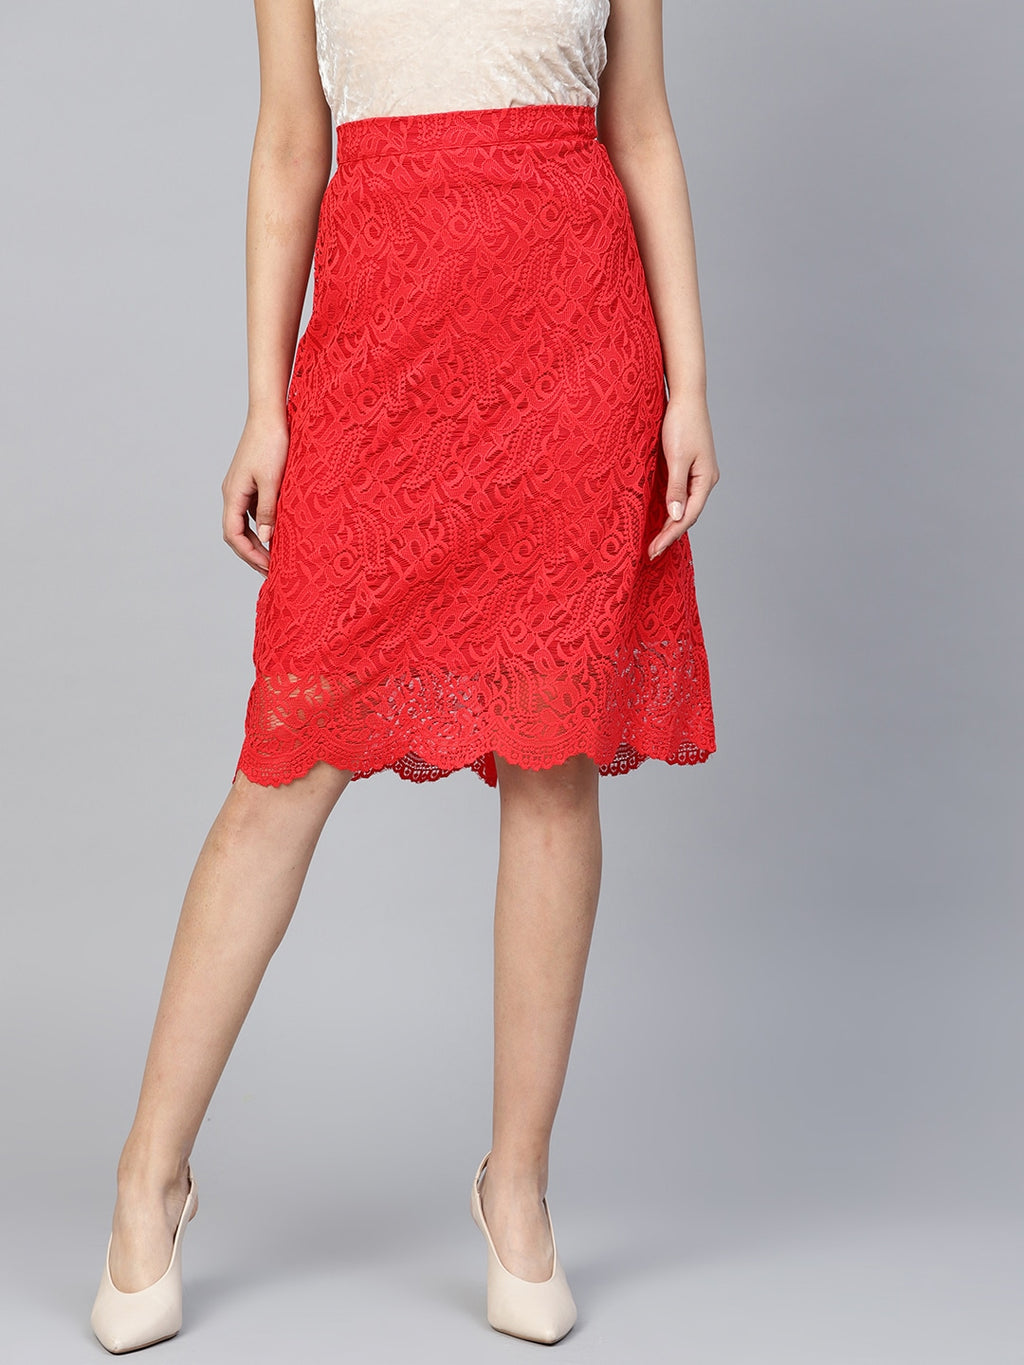 LACE A-LINE SKIRT - chique boutique